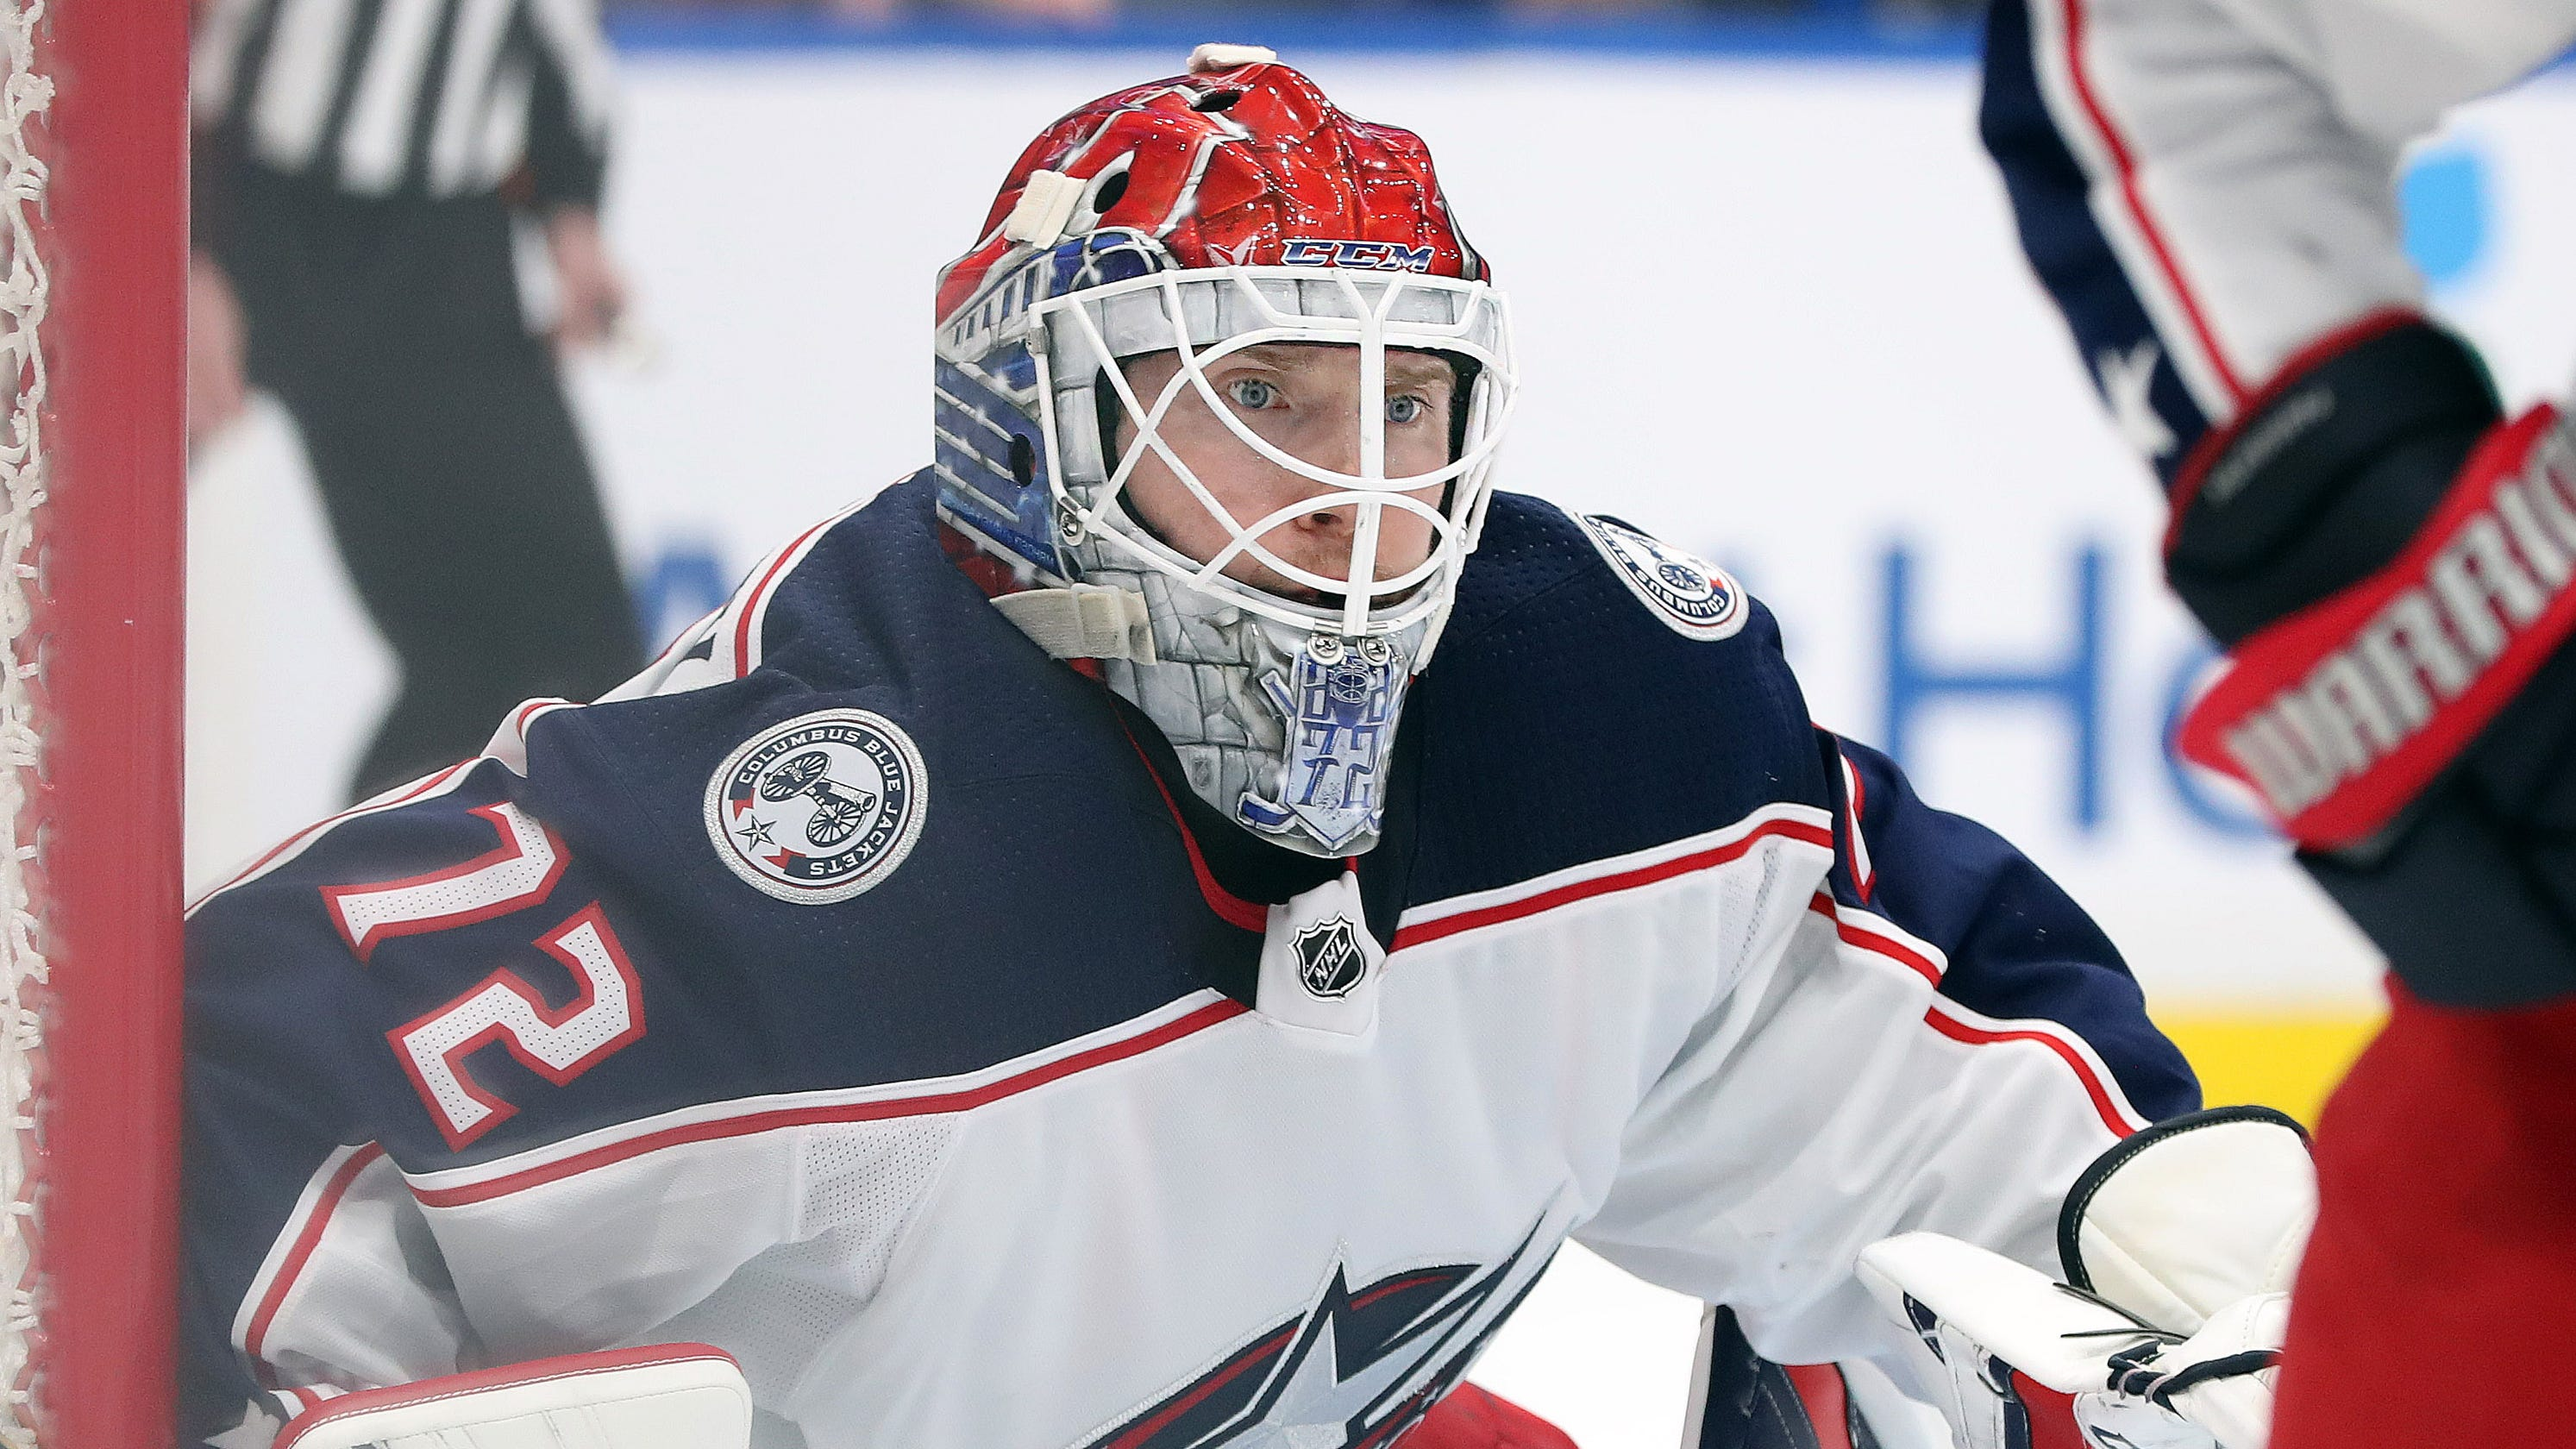 84c24be4537 Blue Jackets take goalie Sergei Bobrovsky off roster for failure to meet   expectations and values